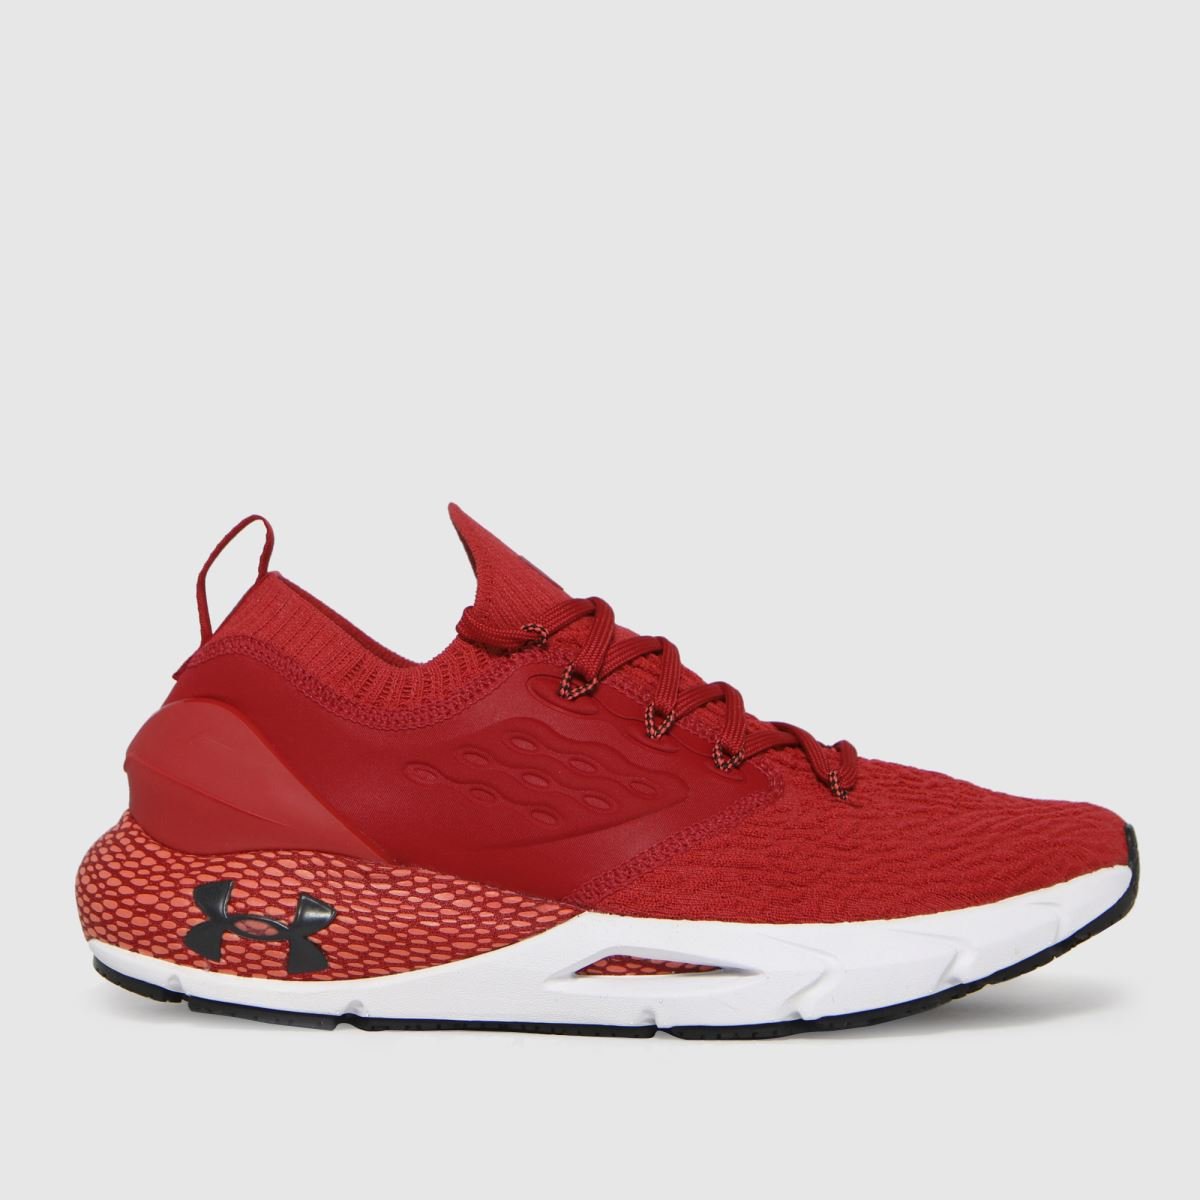 Under Armour Red Hovr Phantom 2 Trainers